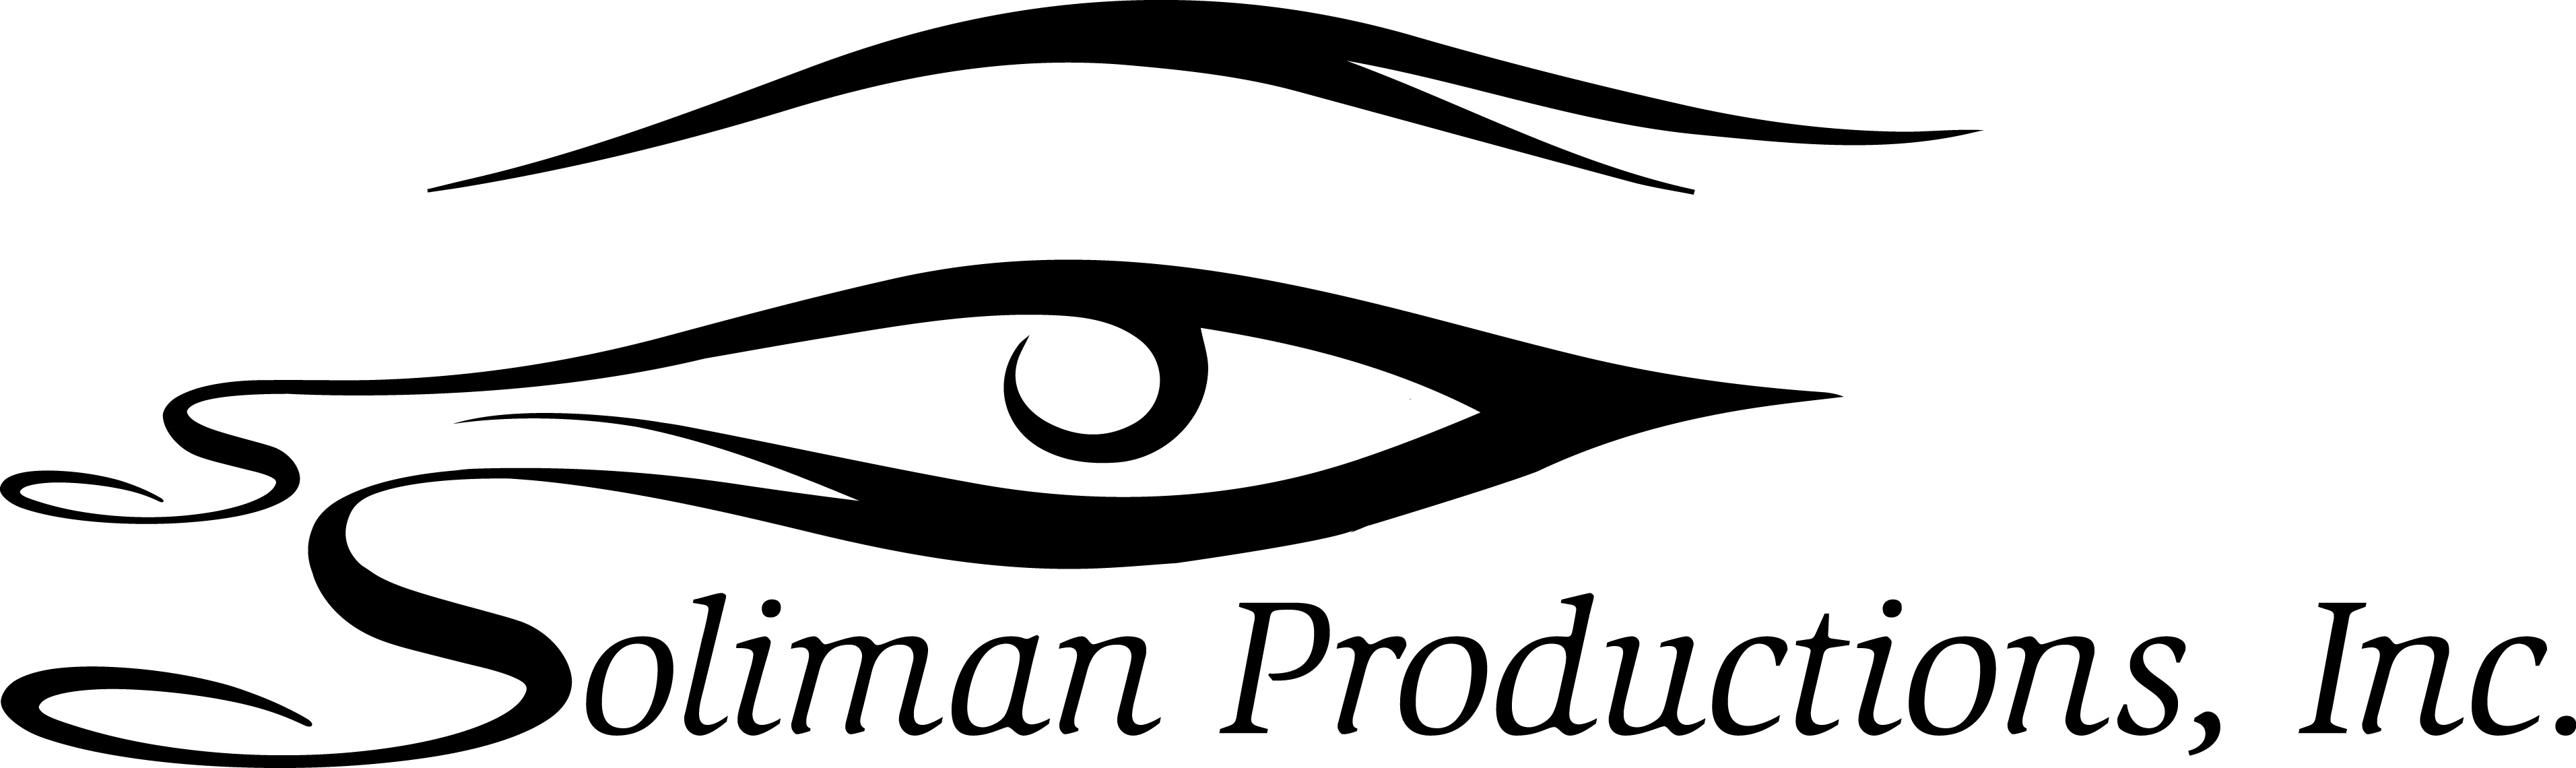 Soliman-Productions-Inc.